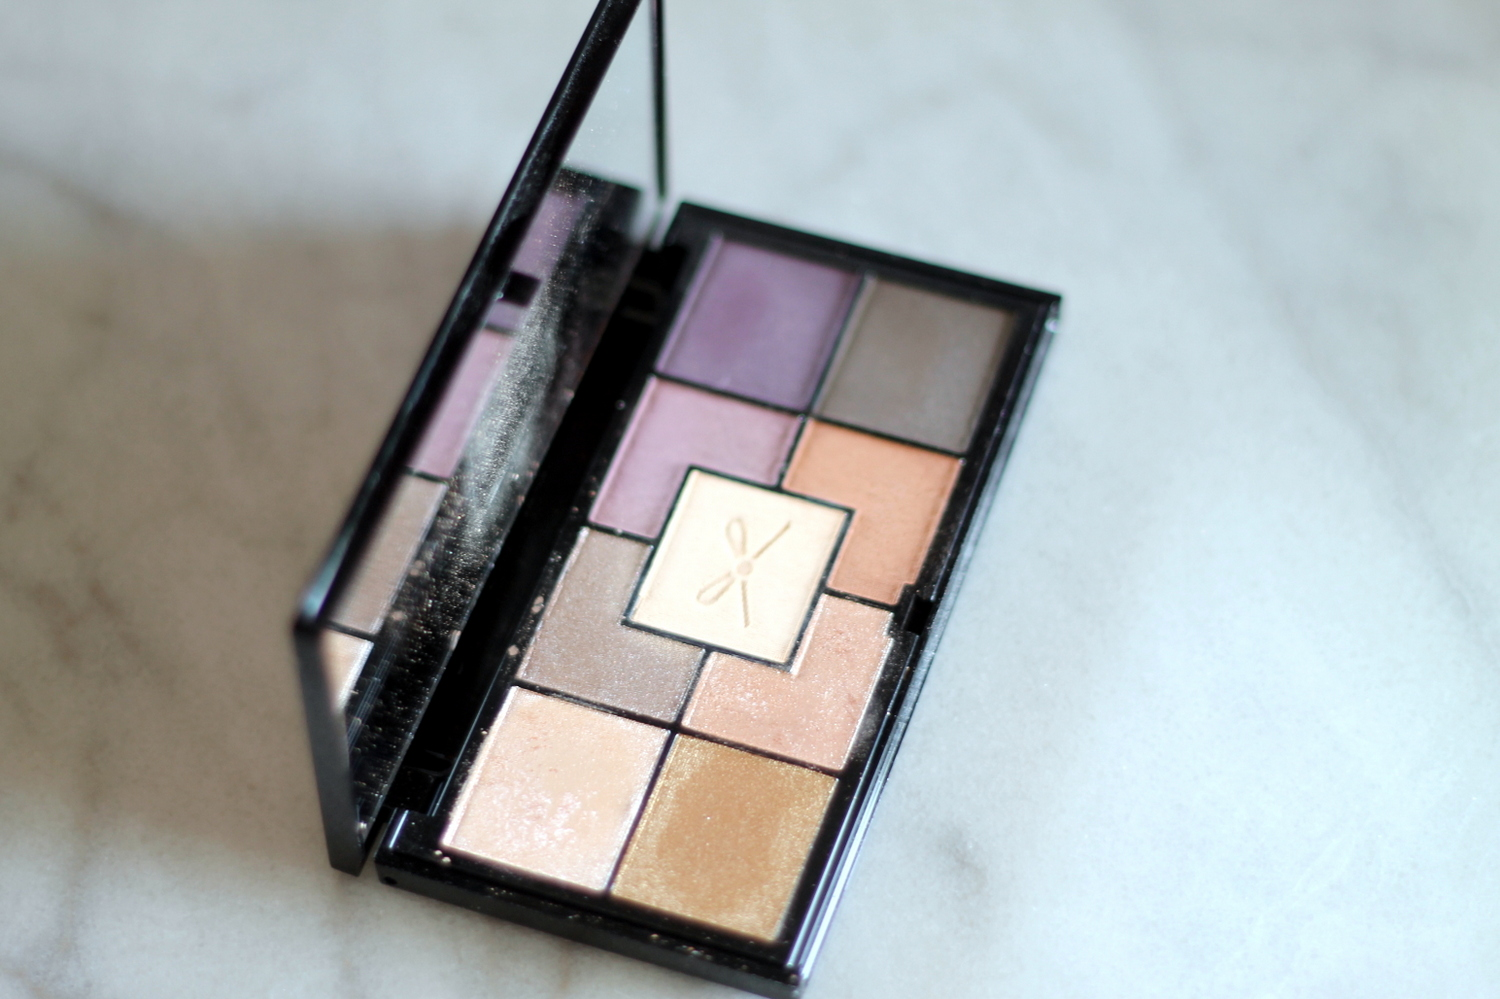 A Pretty Versatile Palette | Re-Mix-Her